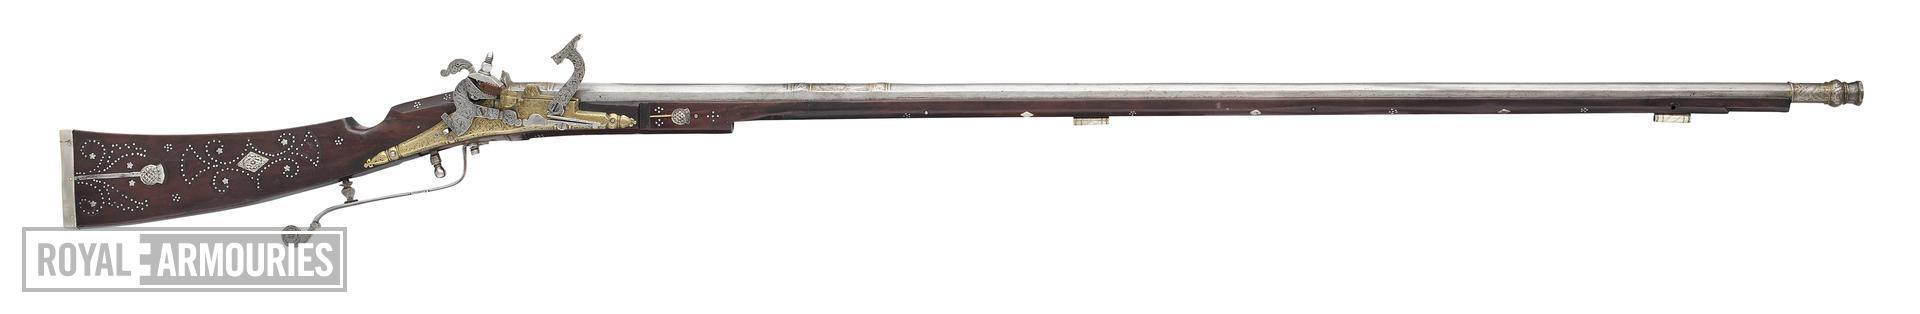 Snaphaunce muzzle-loading sporting gun - Possibly by Robert Alison II of Dundee Top jaw and jaw-screw restored.